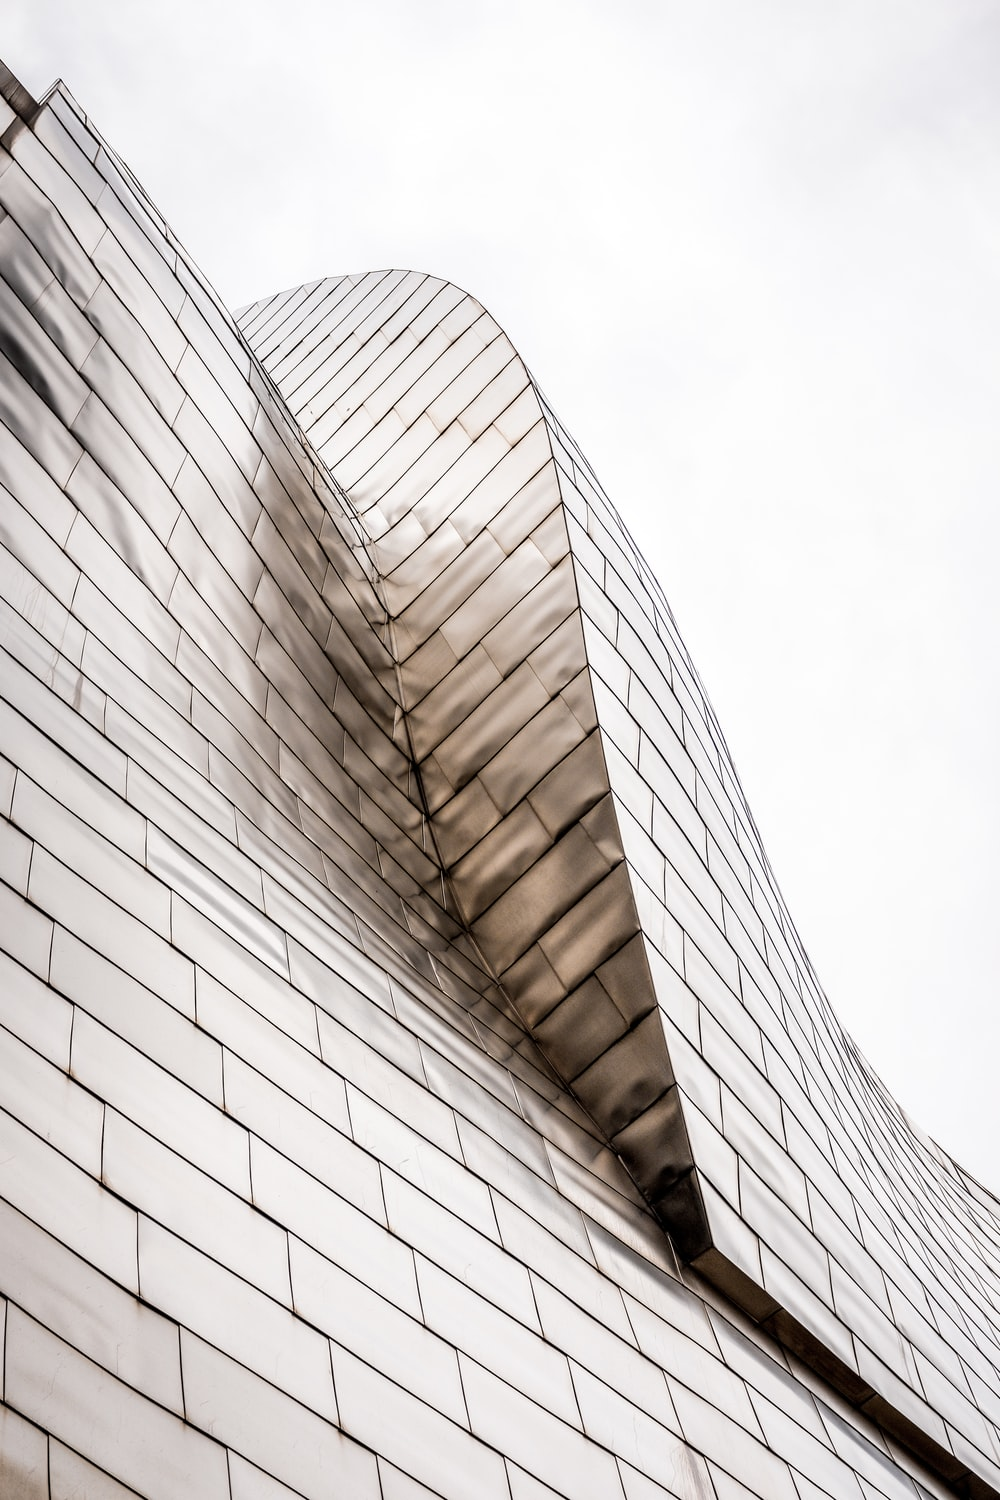 curved-top glass building under white sky